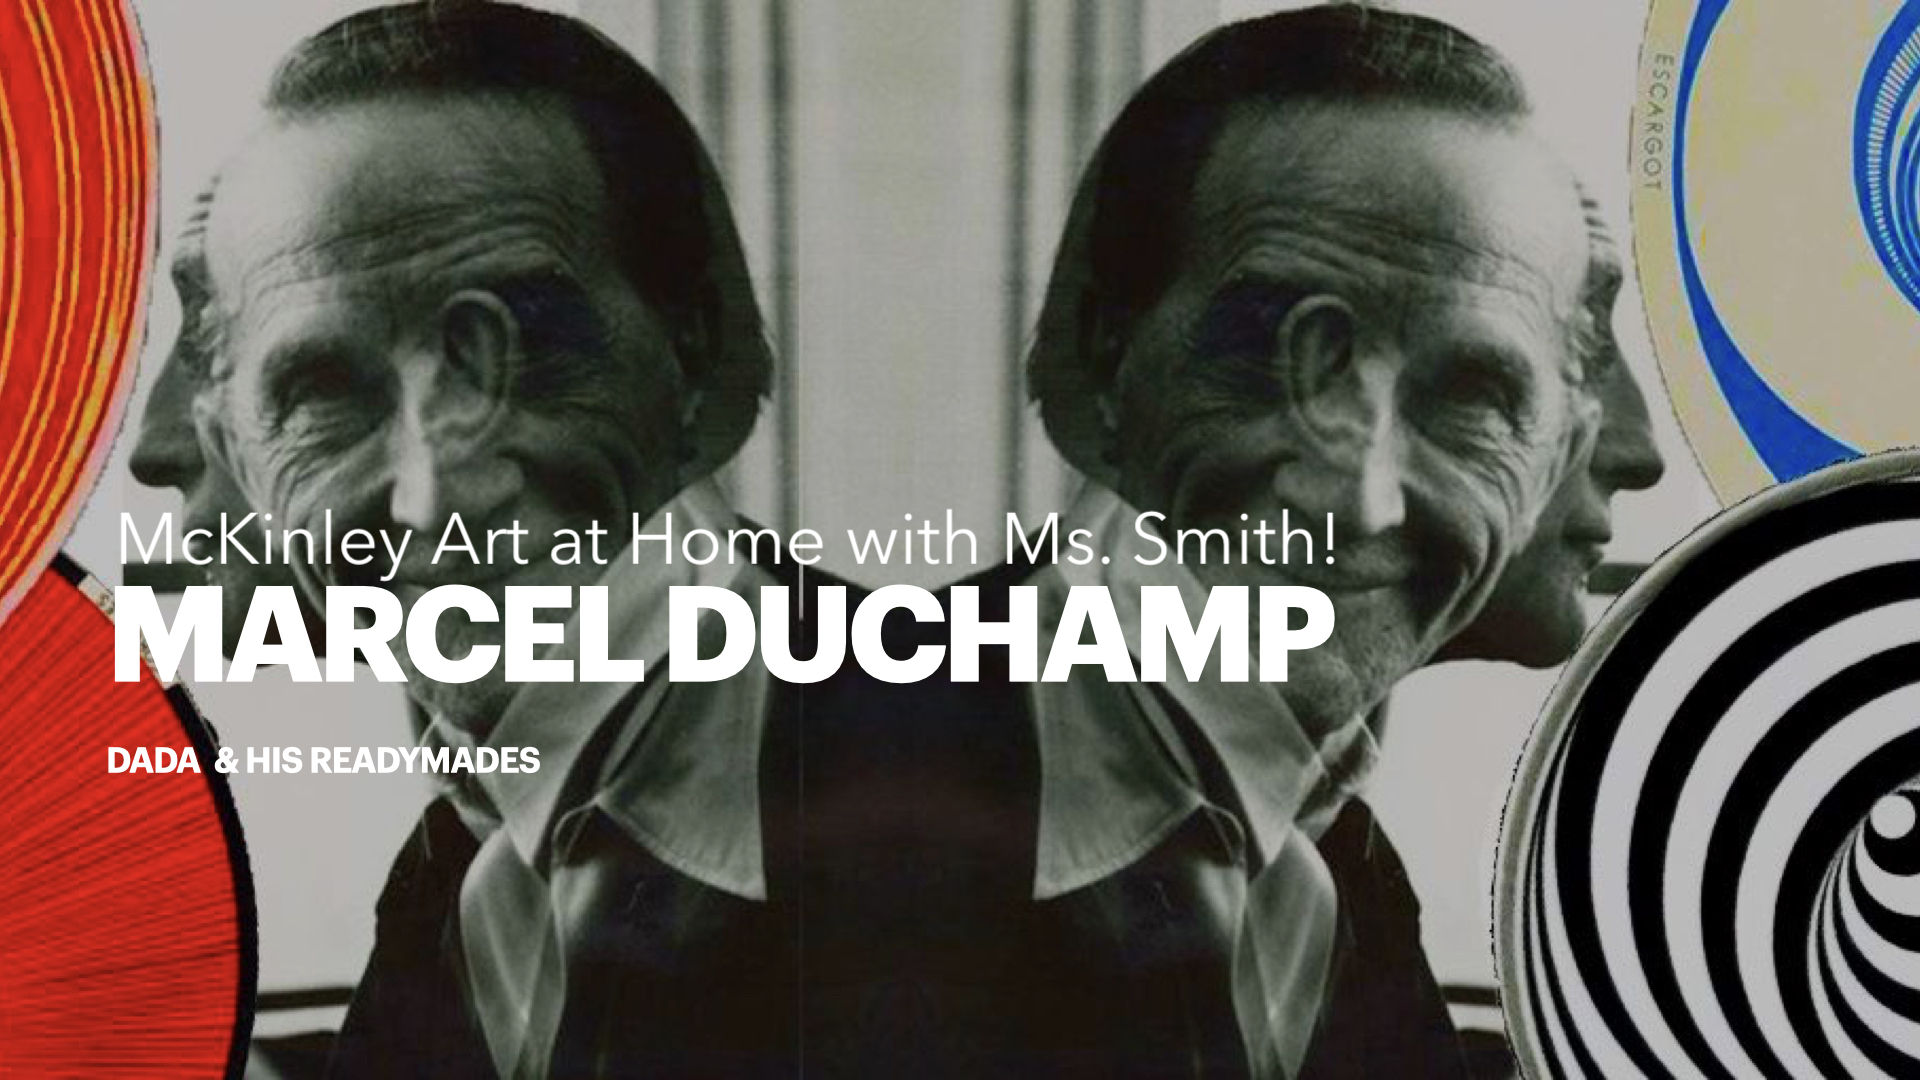 McKinley Art at Home with Ms. Smith! Week 3: Marcel Duchamp and His Readymades!